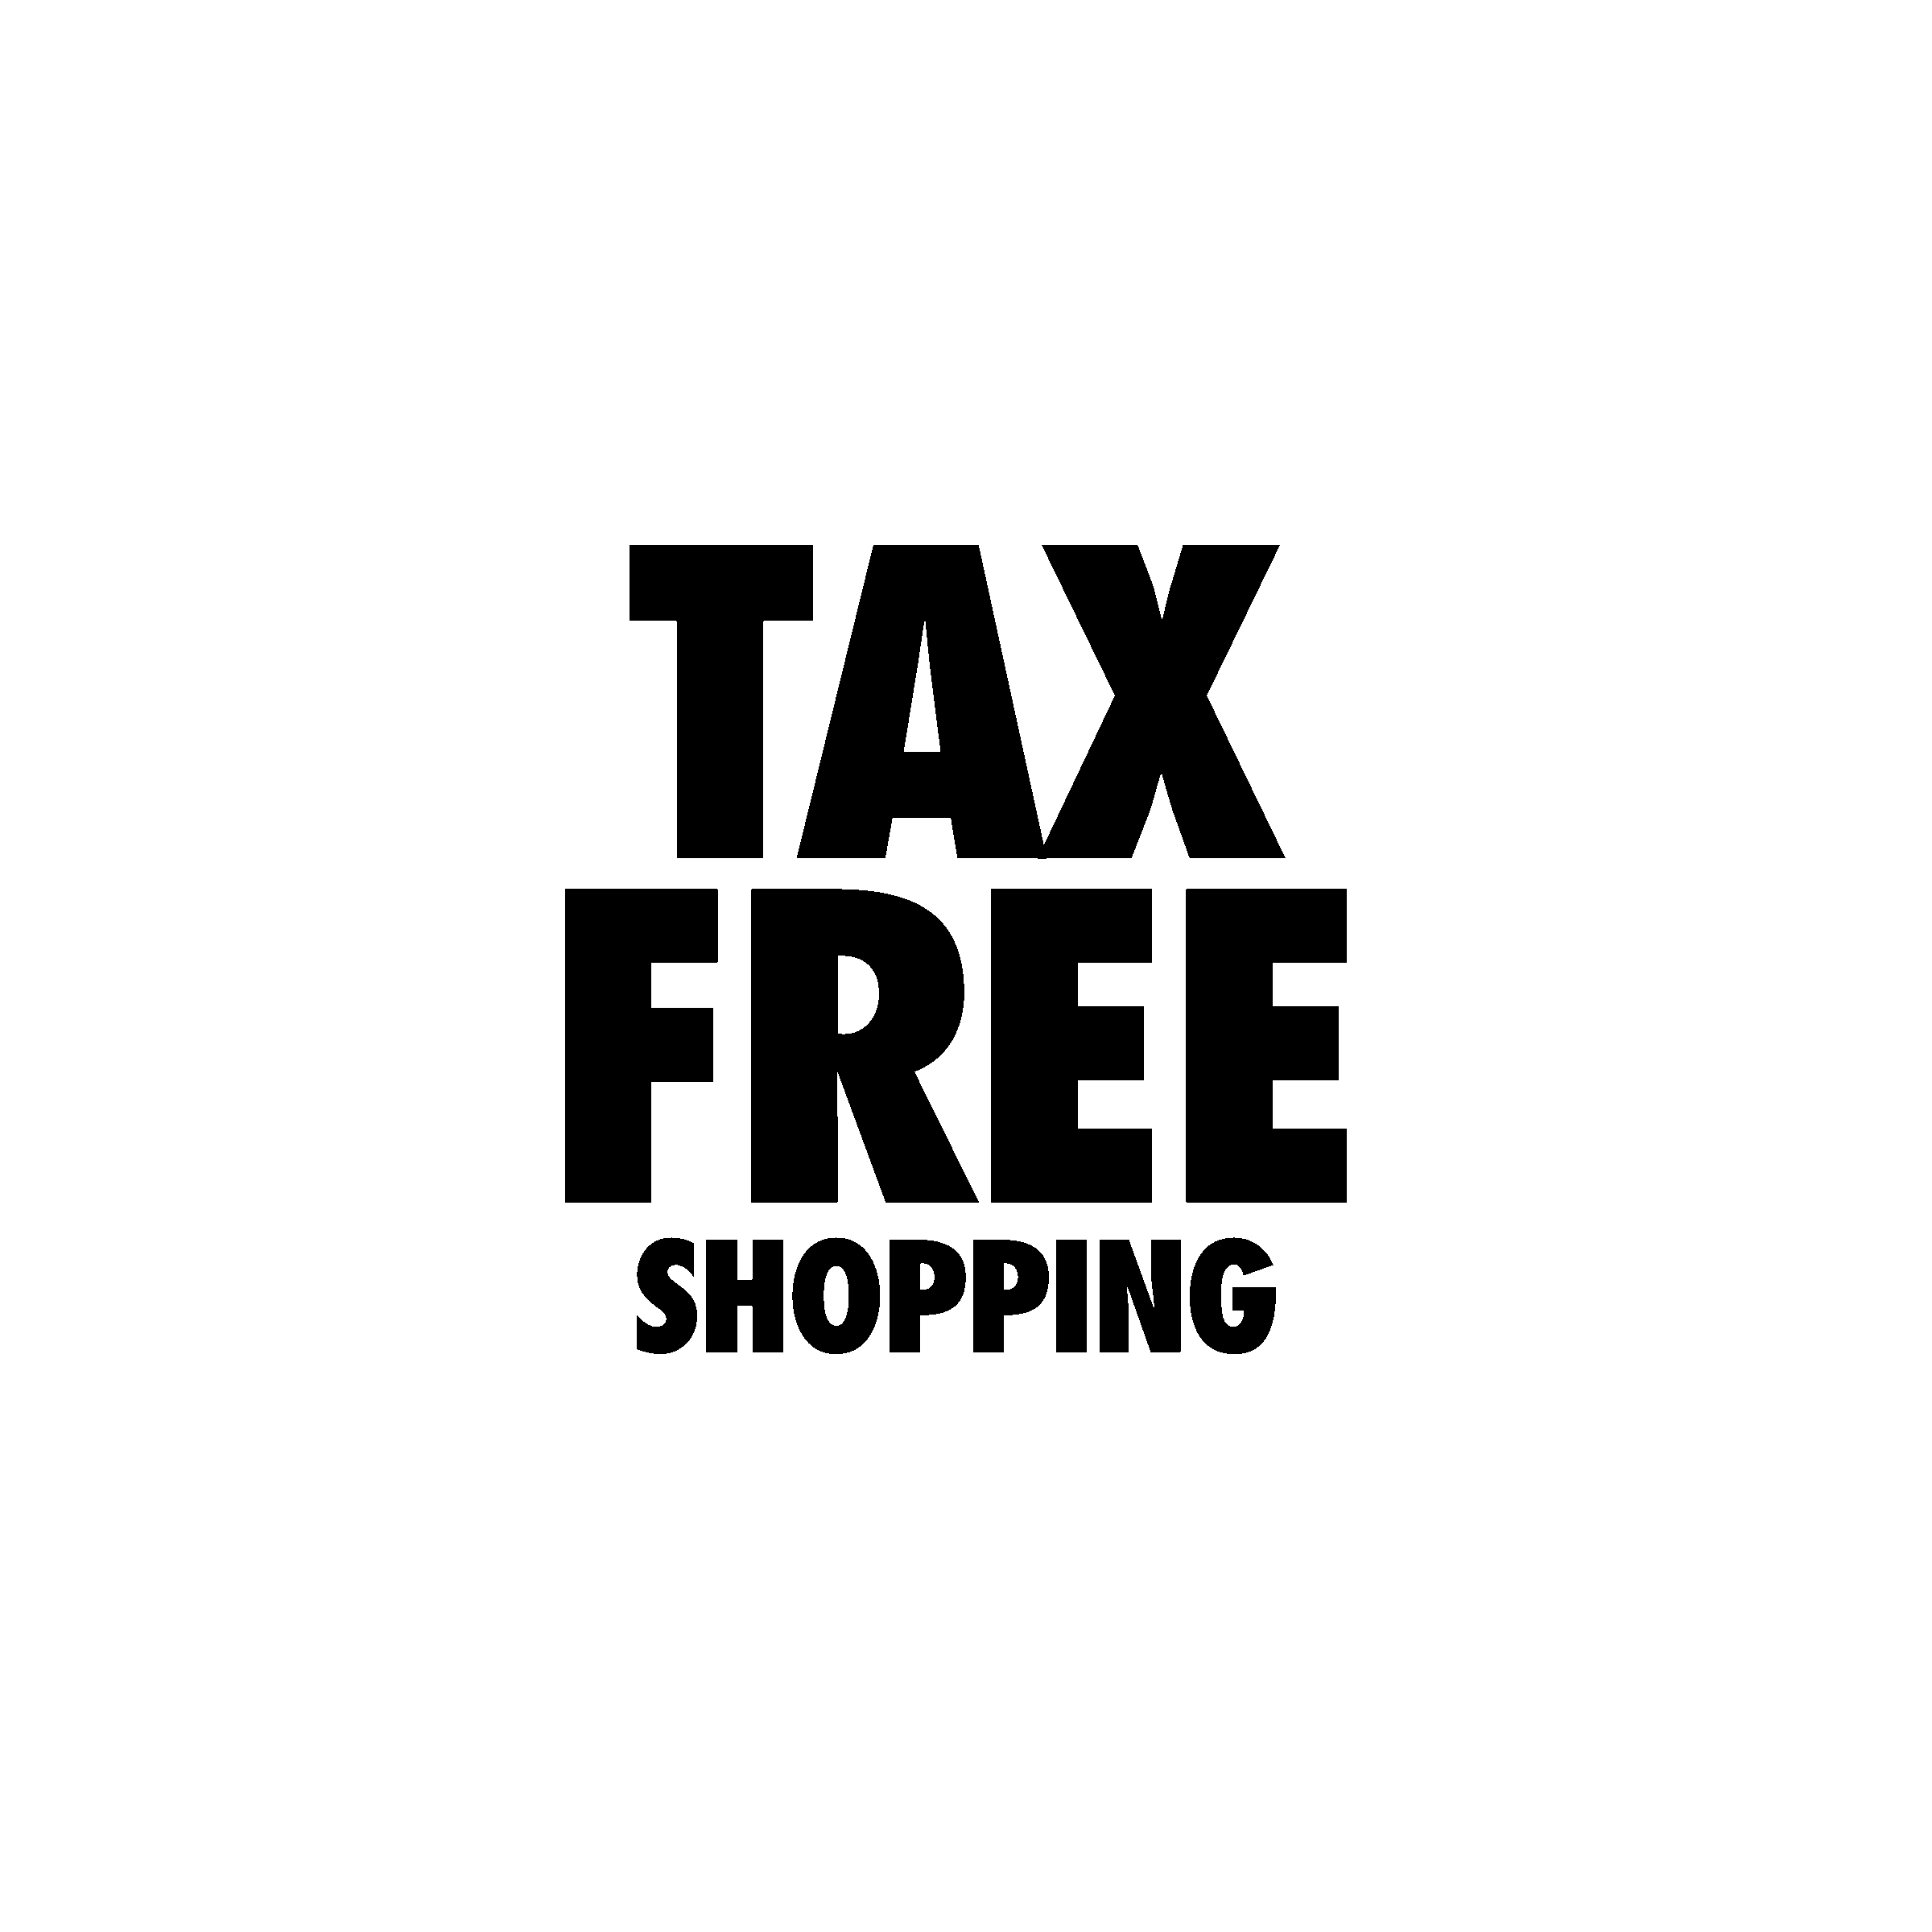 Tax Free Shopping Logo Png Transparent Svg Vector Freebie Supply